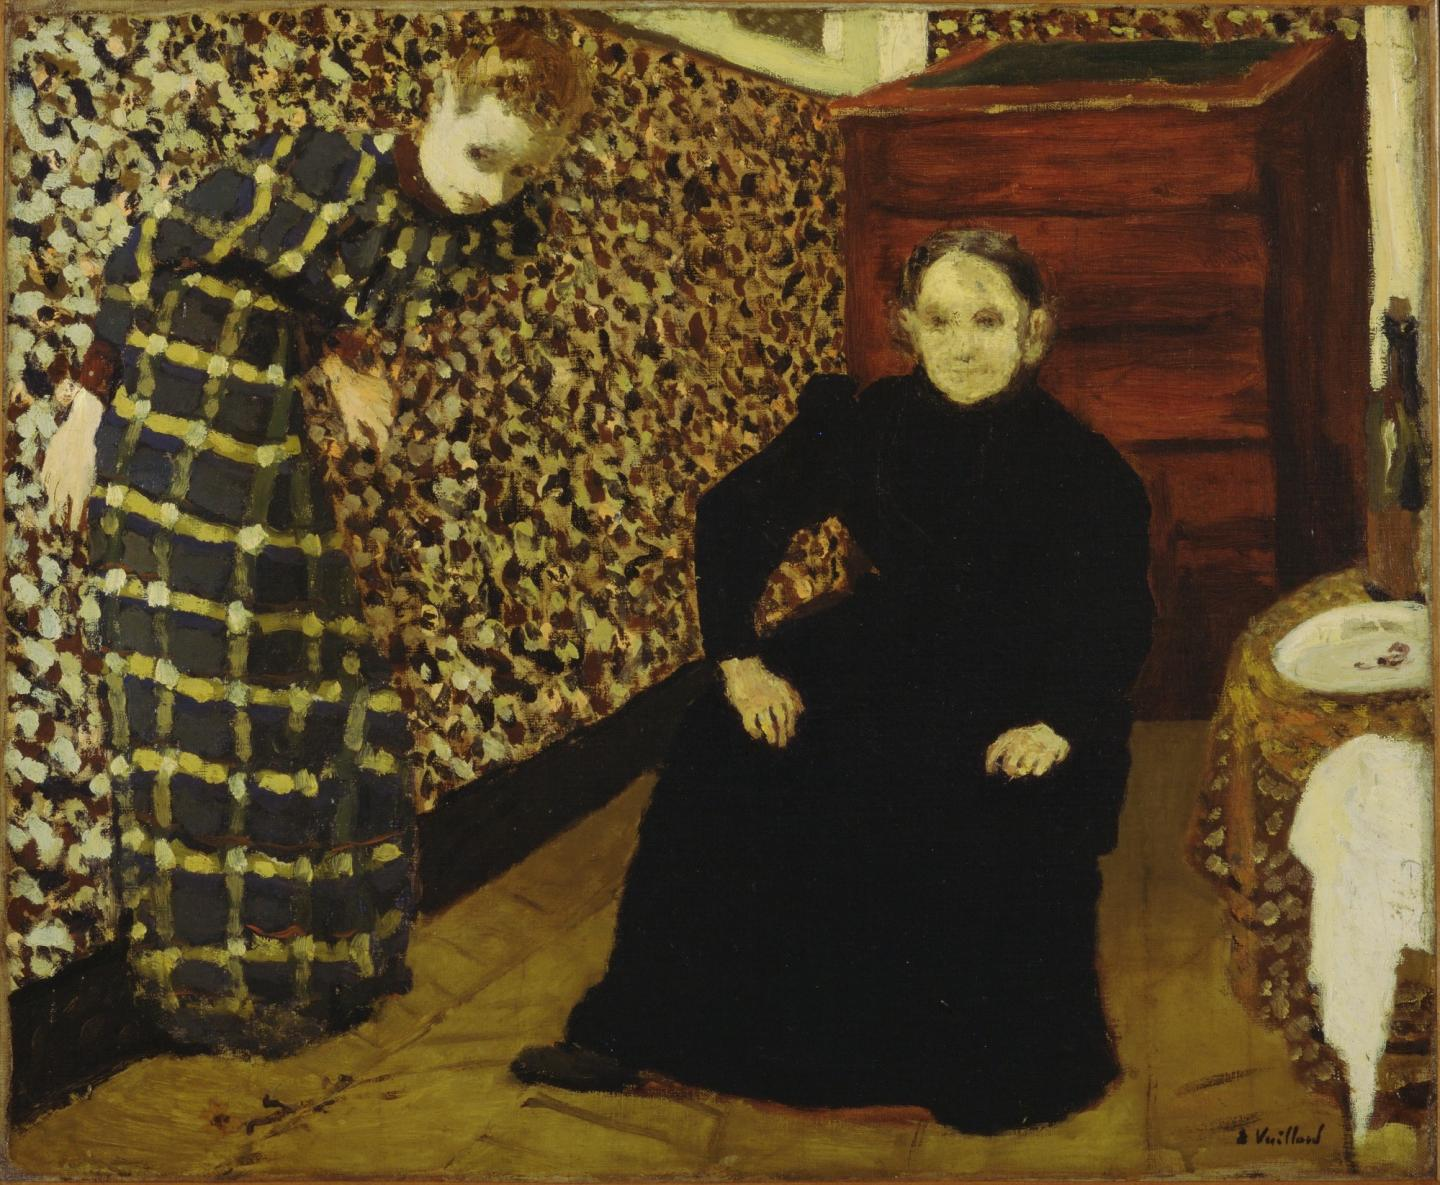 Édouard Vuillard, Interior, Mother and Sister of the Artist, 1893, oil on canvas, 46.3 x 56.5 cm. Courtesy: Museum of Modern Art, New York and © 2020 Artists Rights Society (ARS), New York / ADAGP, Paris